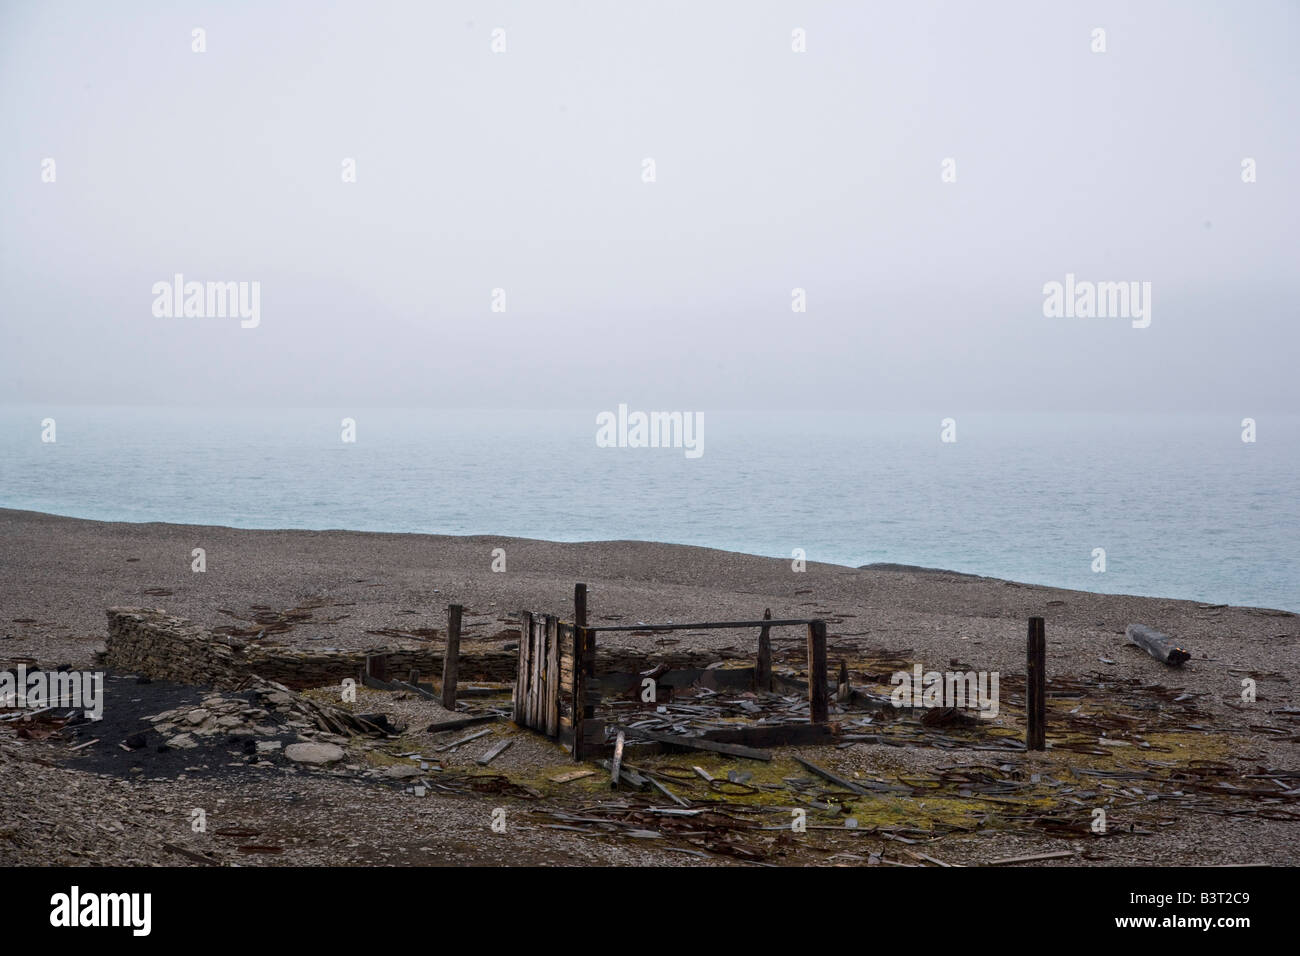 Remains of the Northumberland House, Sir John Franklin Expedition, Nunavut, Canada - Stock Image